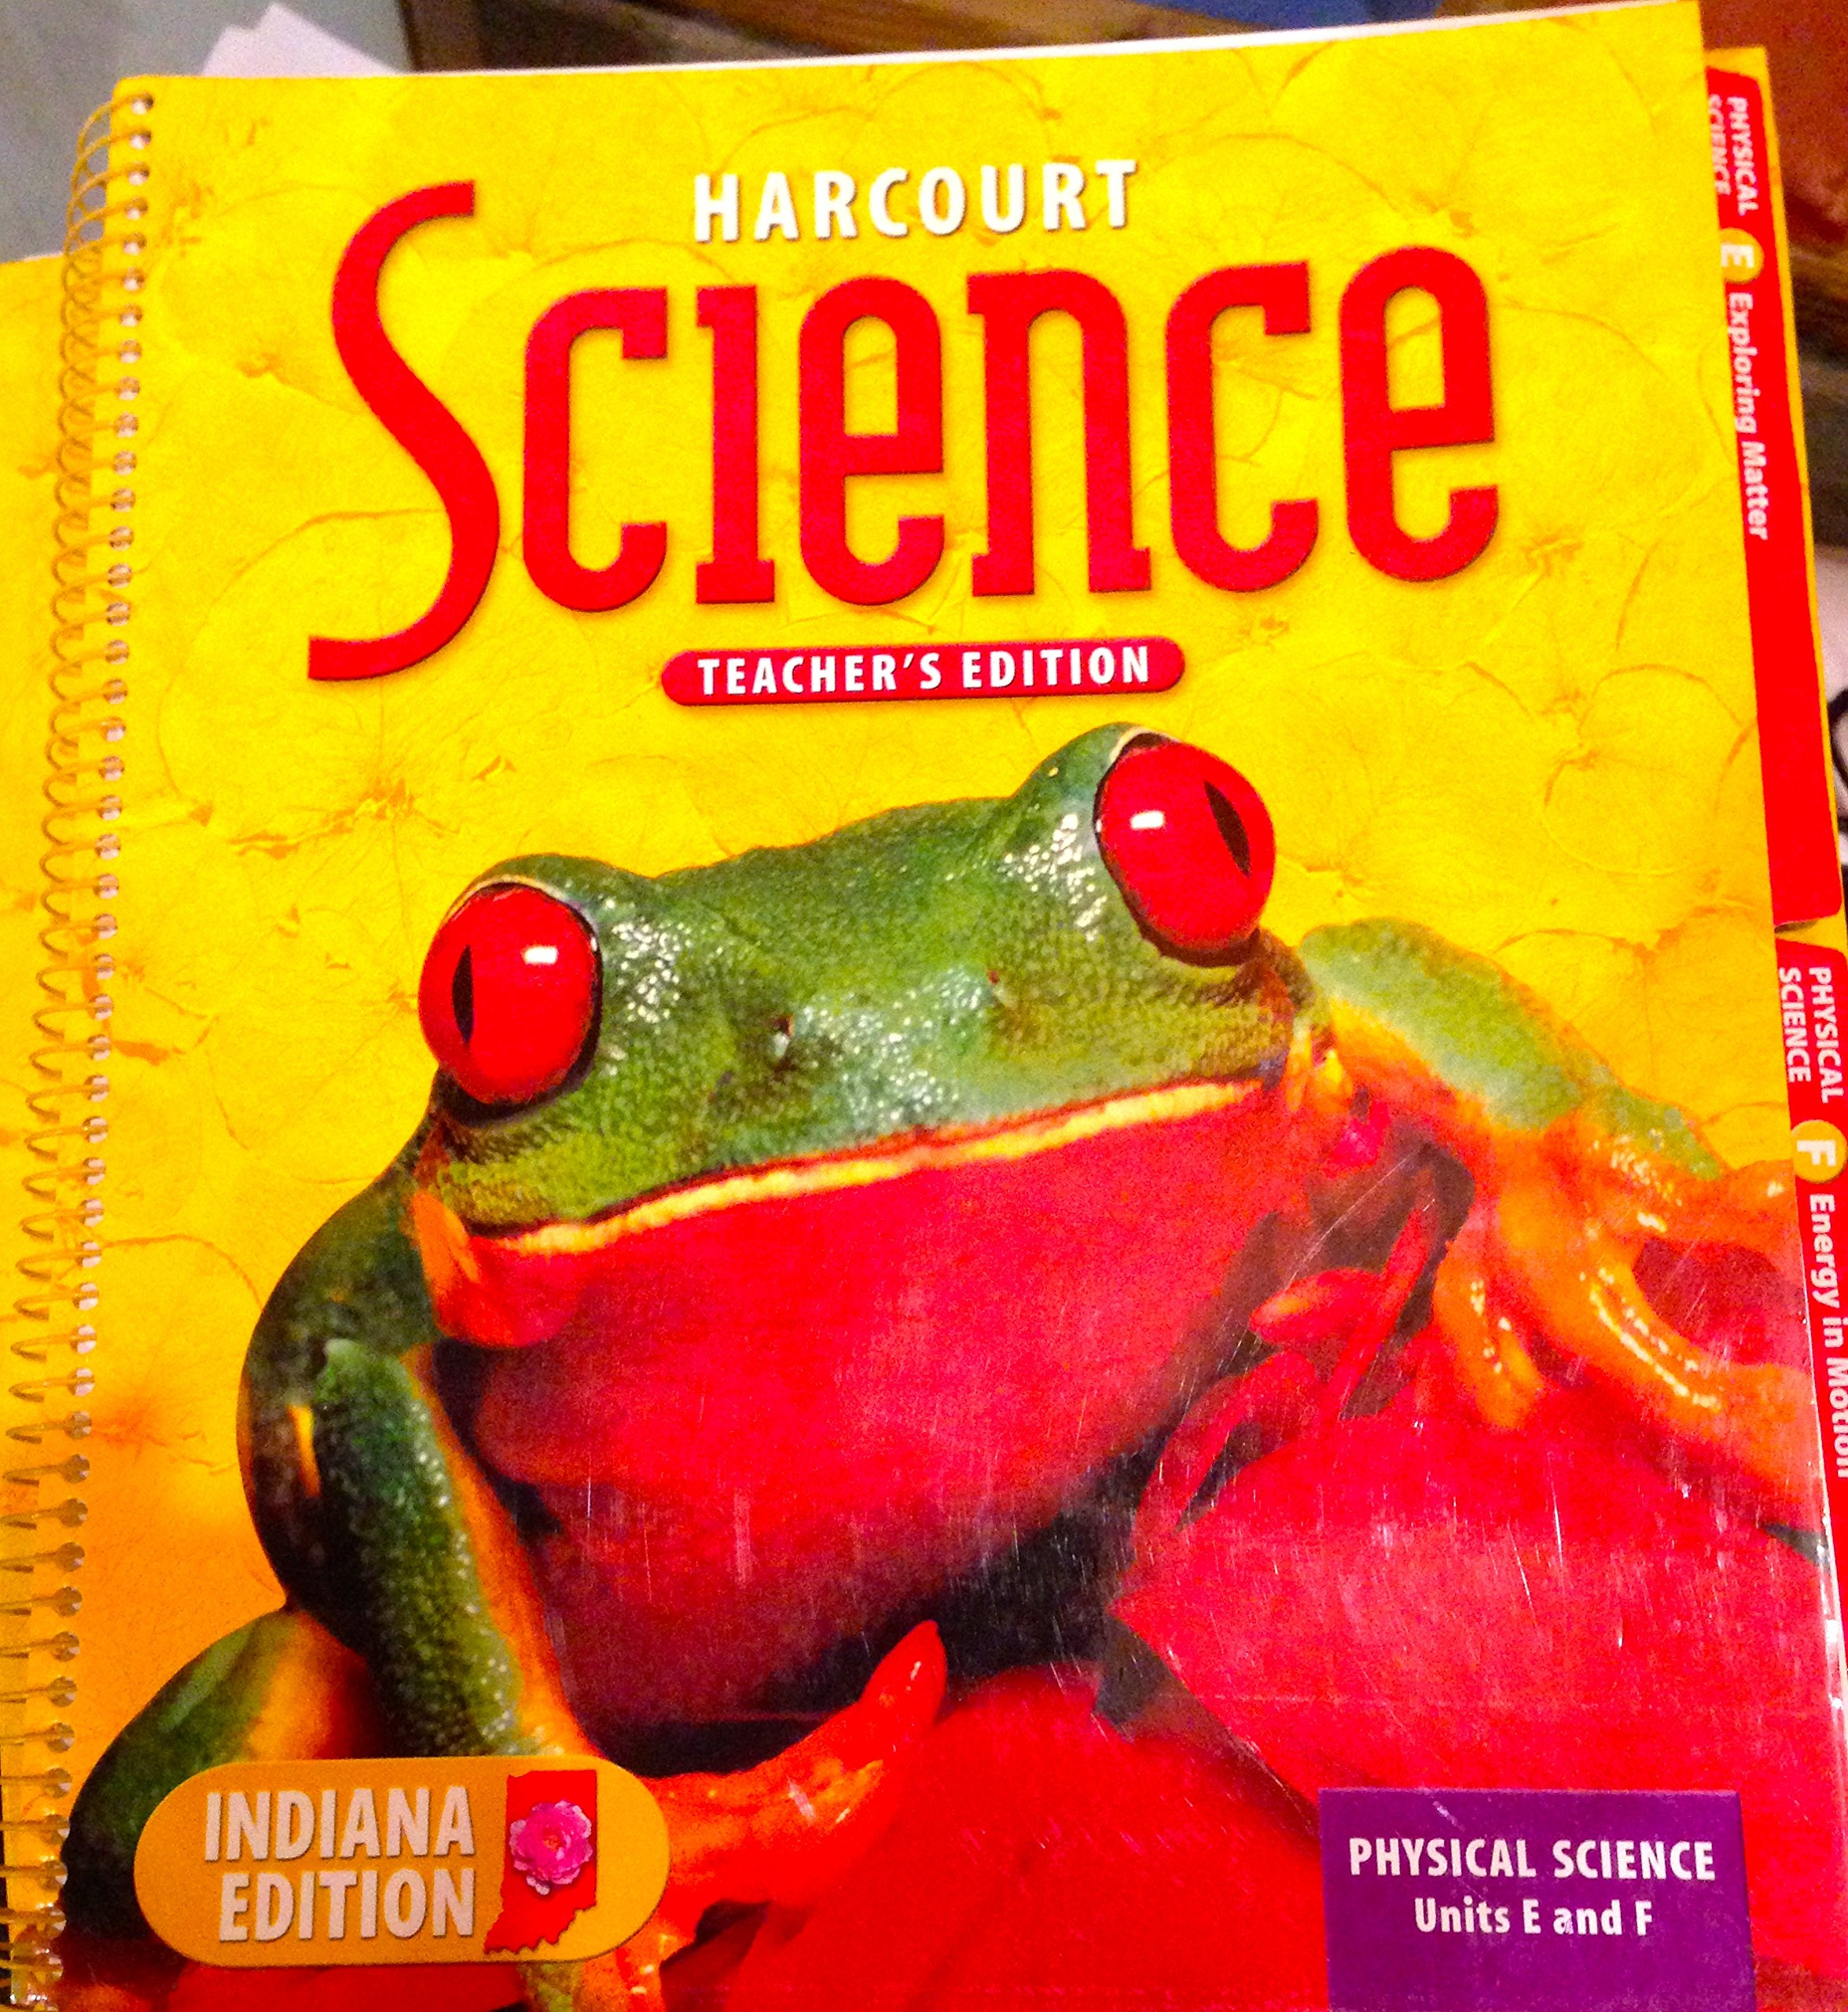 Harcourt Science: Physical Science, Units E and F, Indiana Teacher's Edition PDF